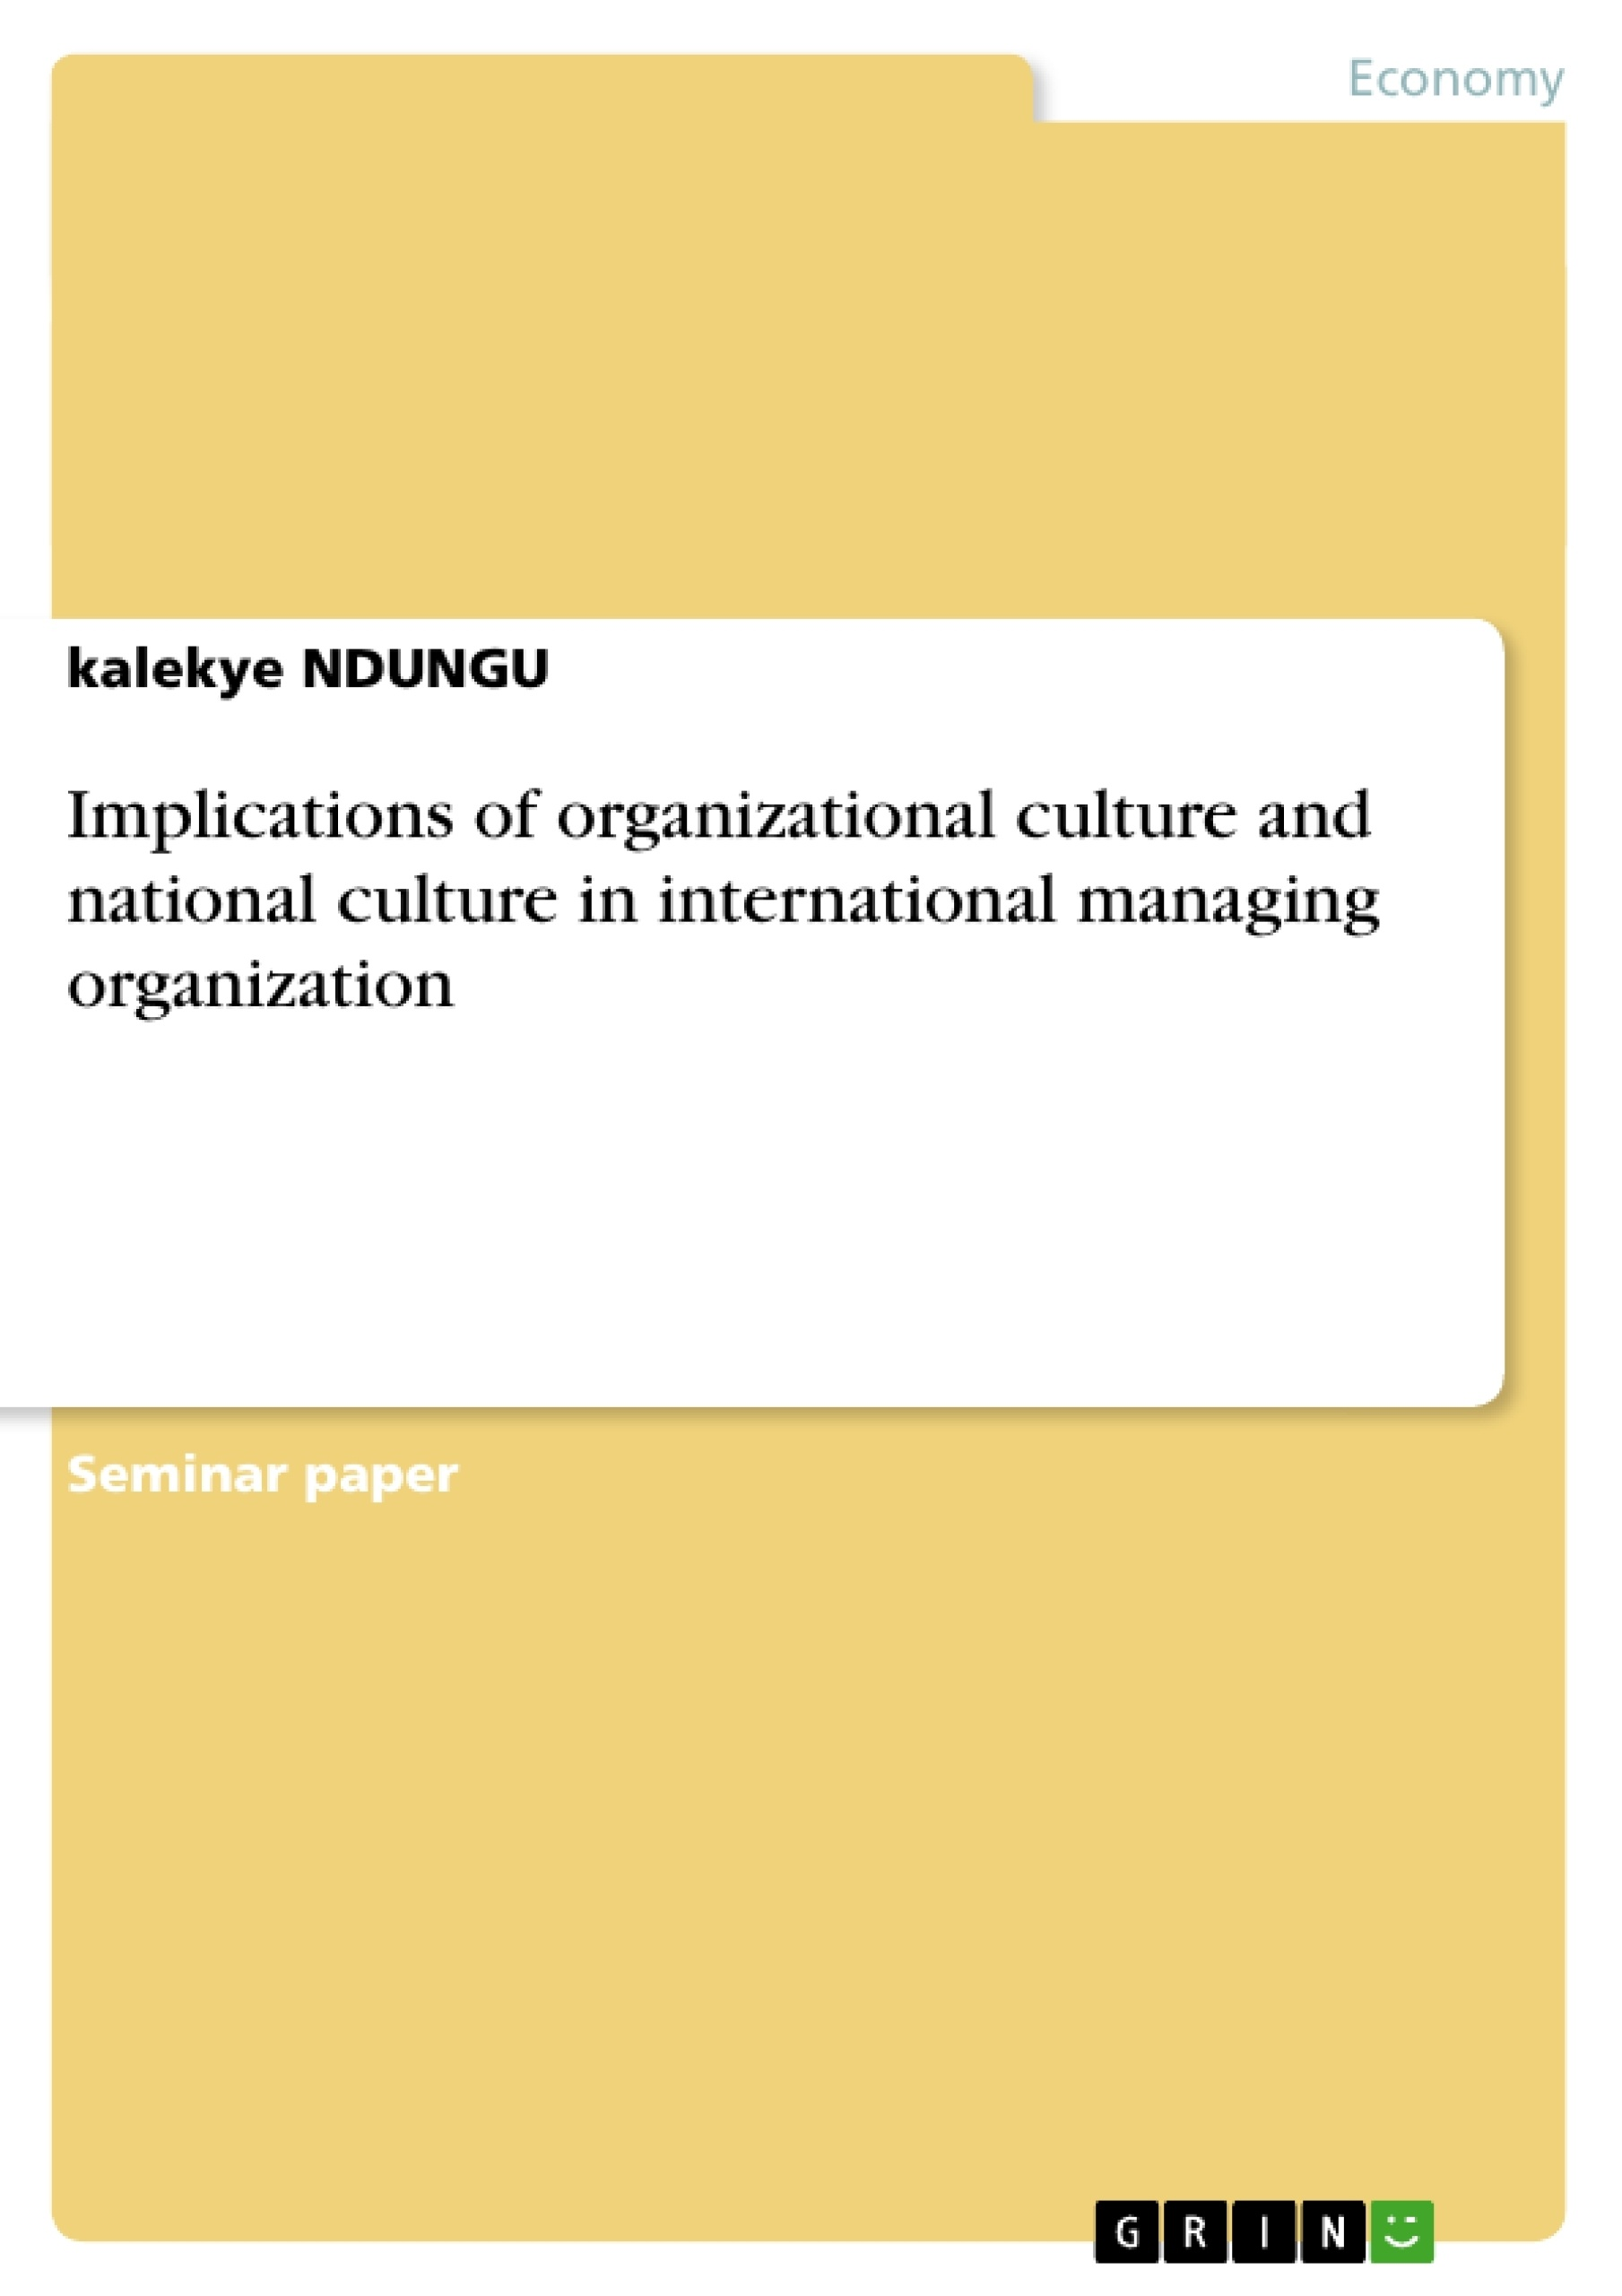 importance of national and organisational culture management essay Organisational structure and culture of the oceans 11 team essay 6498 words | 26 pages organisational structure and culture of the oceans 11 team 10 executive summary: the department of trade and industry (dti)[1] wished to review how the ocean's 11 team was formed and discuss by putting a management development programme together, the organisational behavioural aspects of the group.